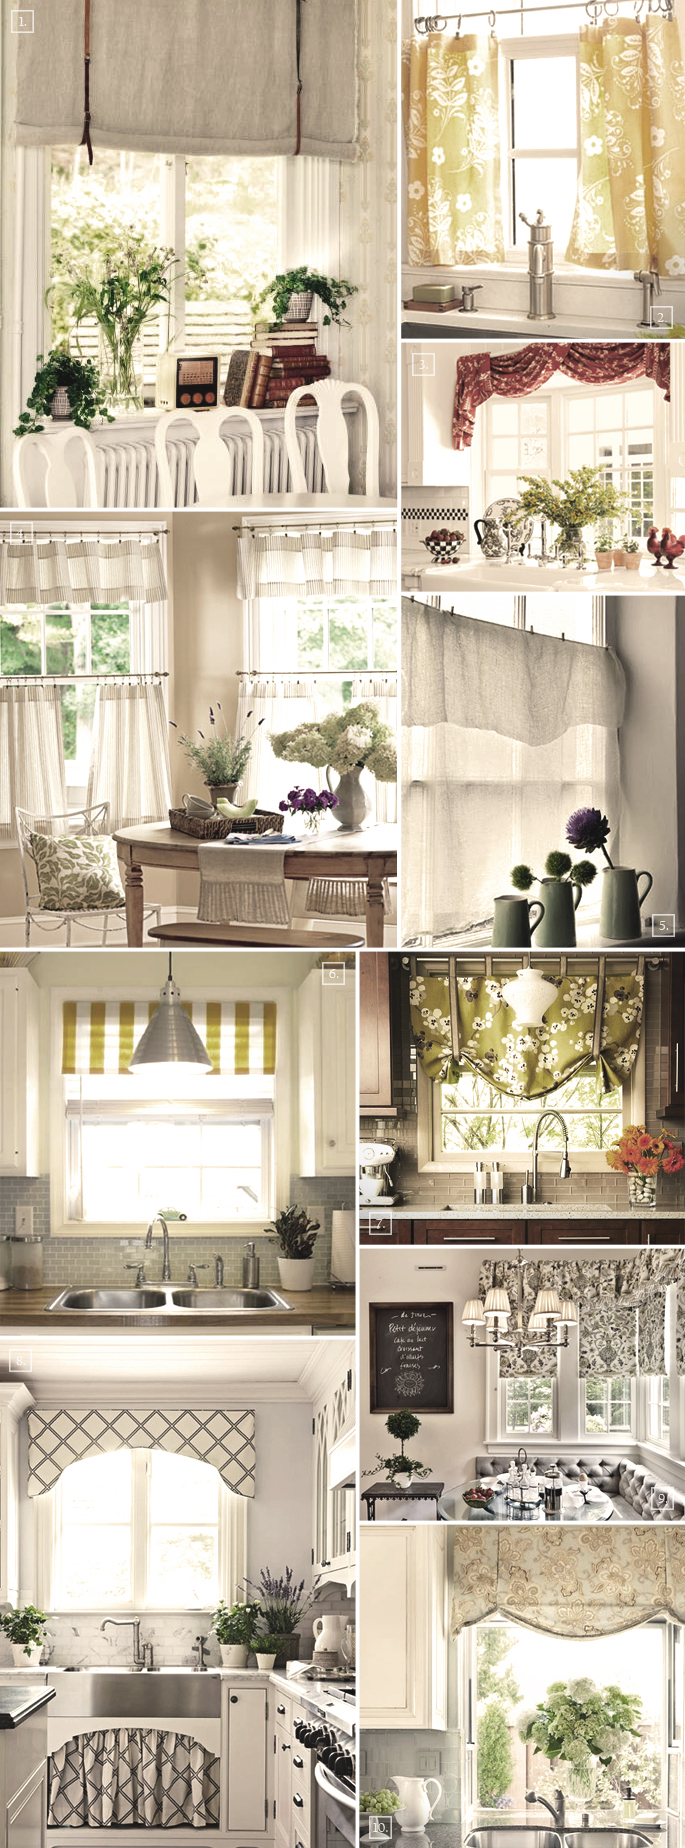 Decorating The Windows With These Kitchen Curtain Ideas Home Tree Atlas